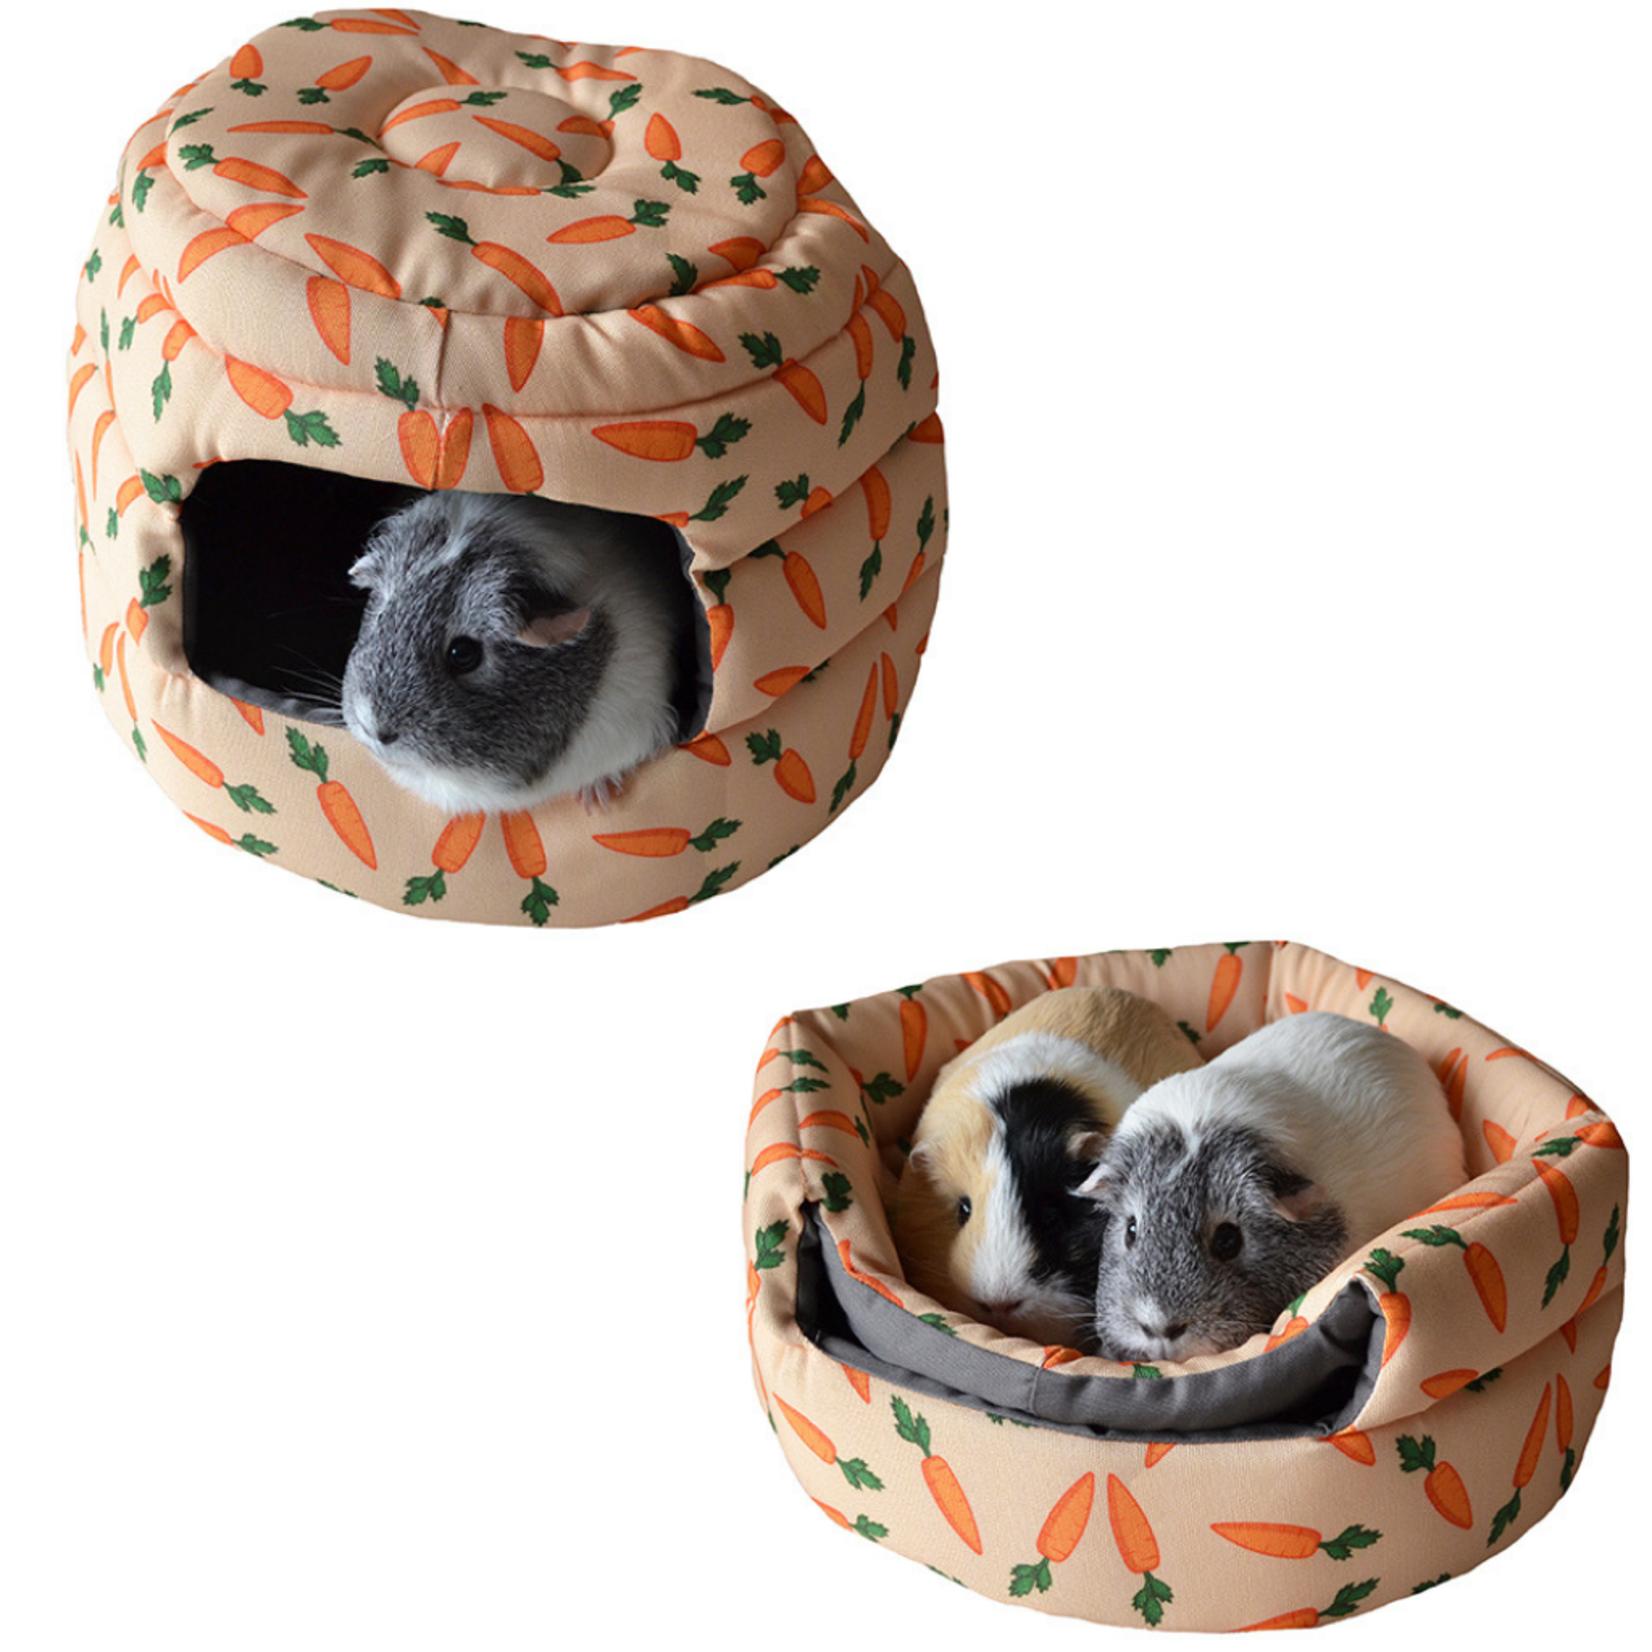 Rosewood 2 in 1 Carrot Design 'Beehive' Small Animal Bed